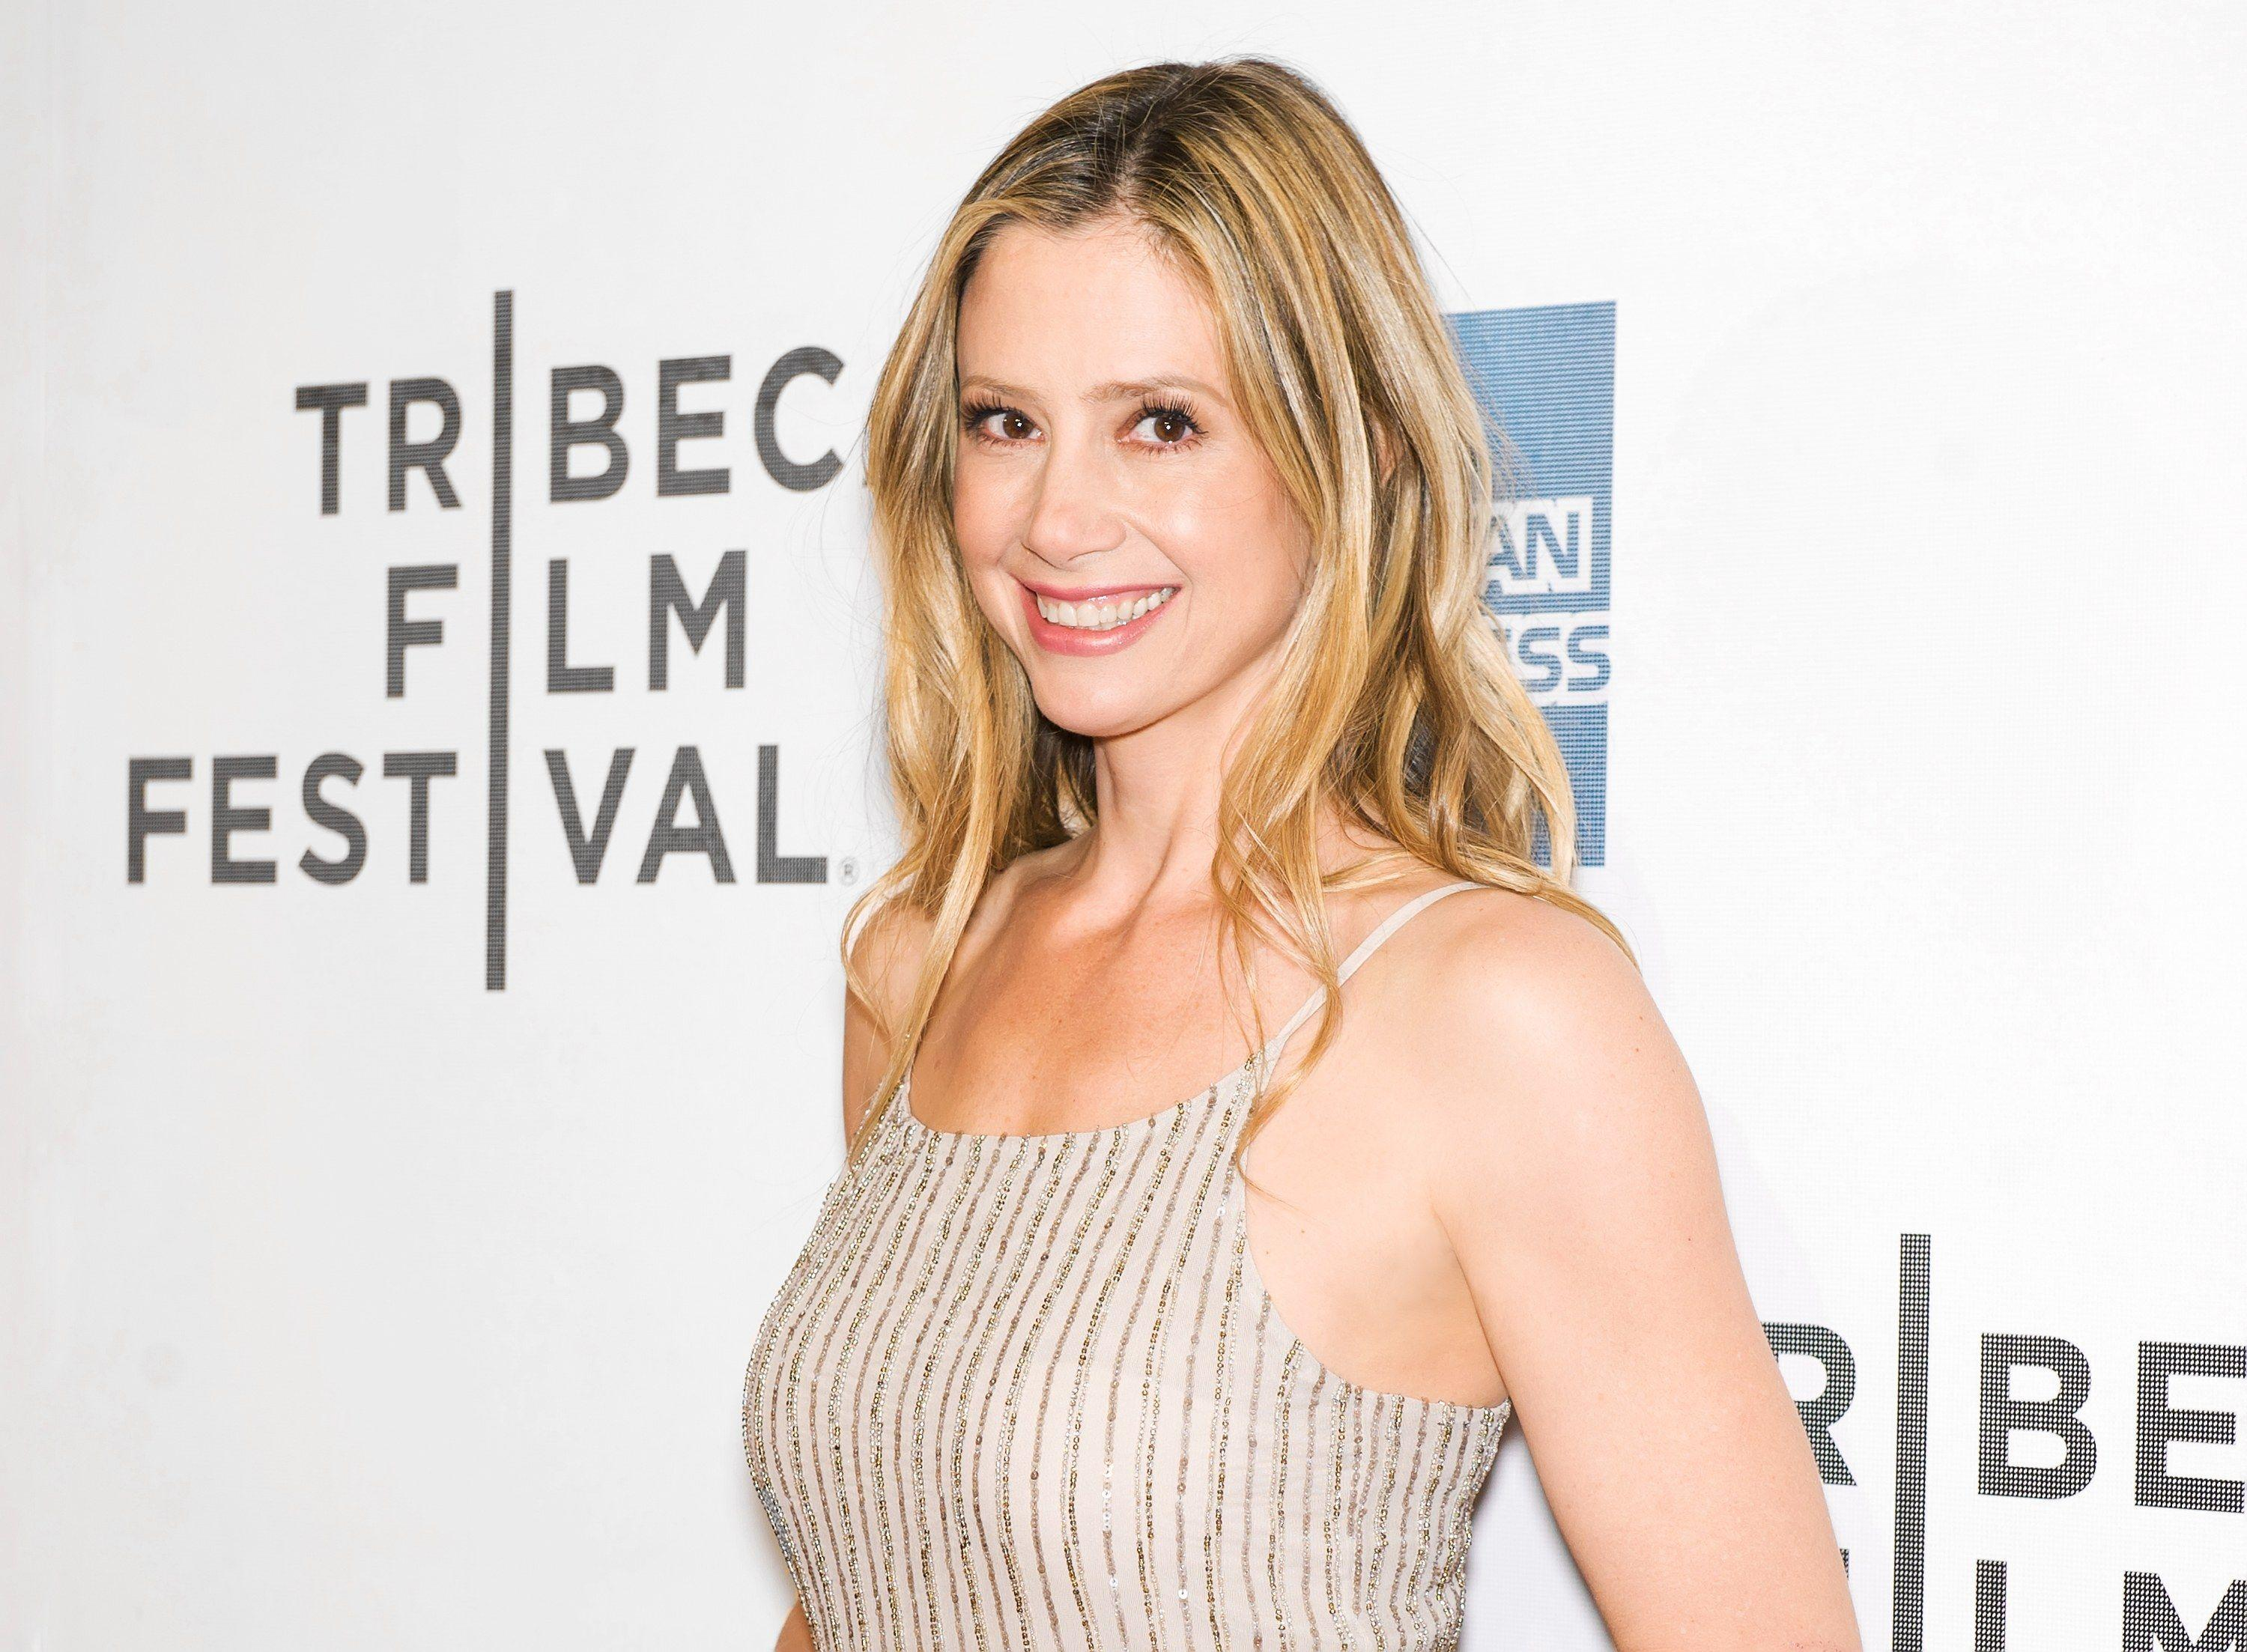 Mira Sorvino on Selfies, Growing Up in New Jersey, and Vintage ...